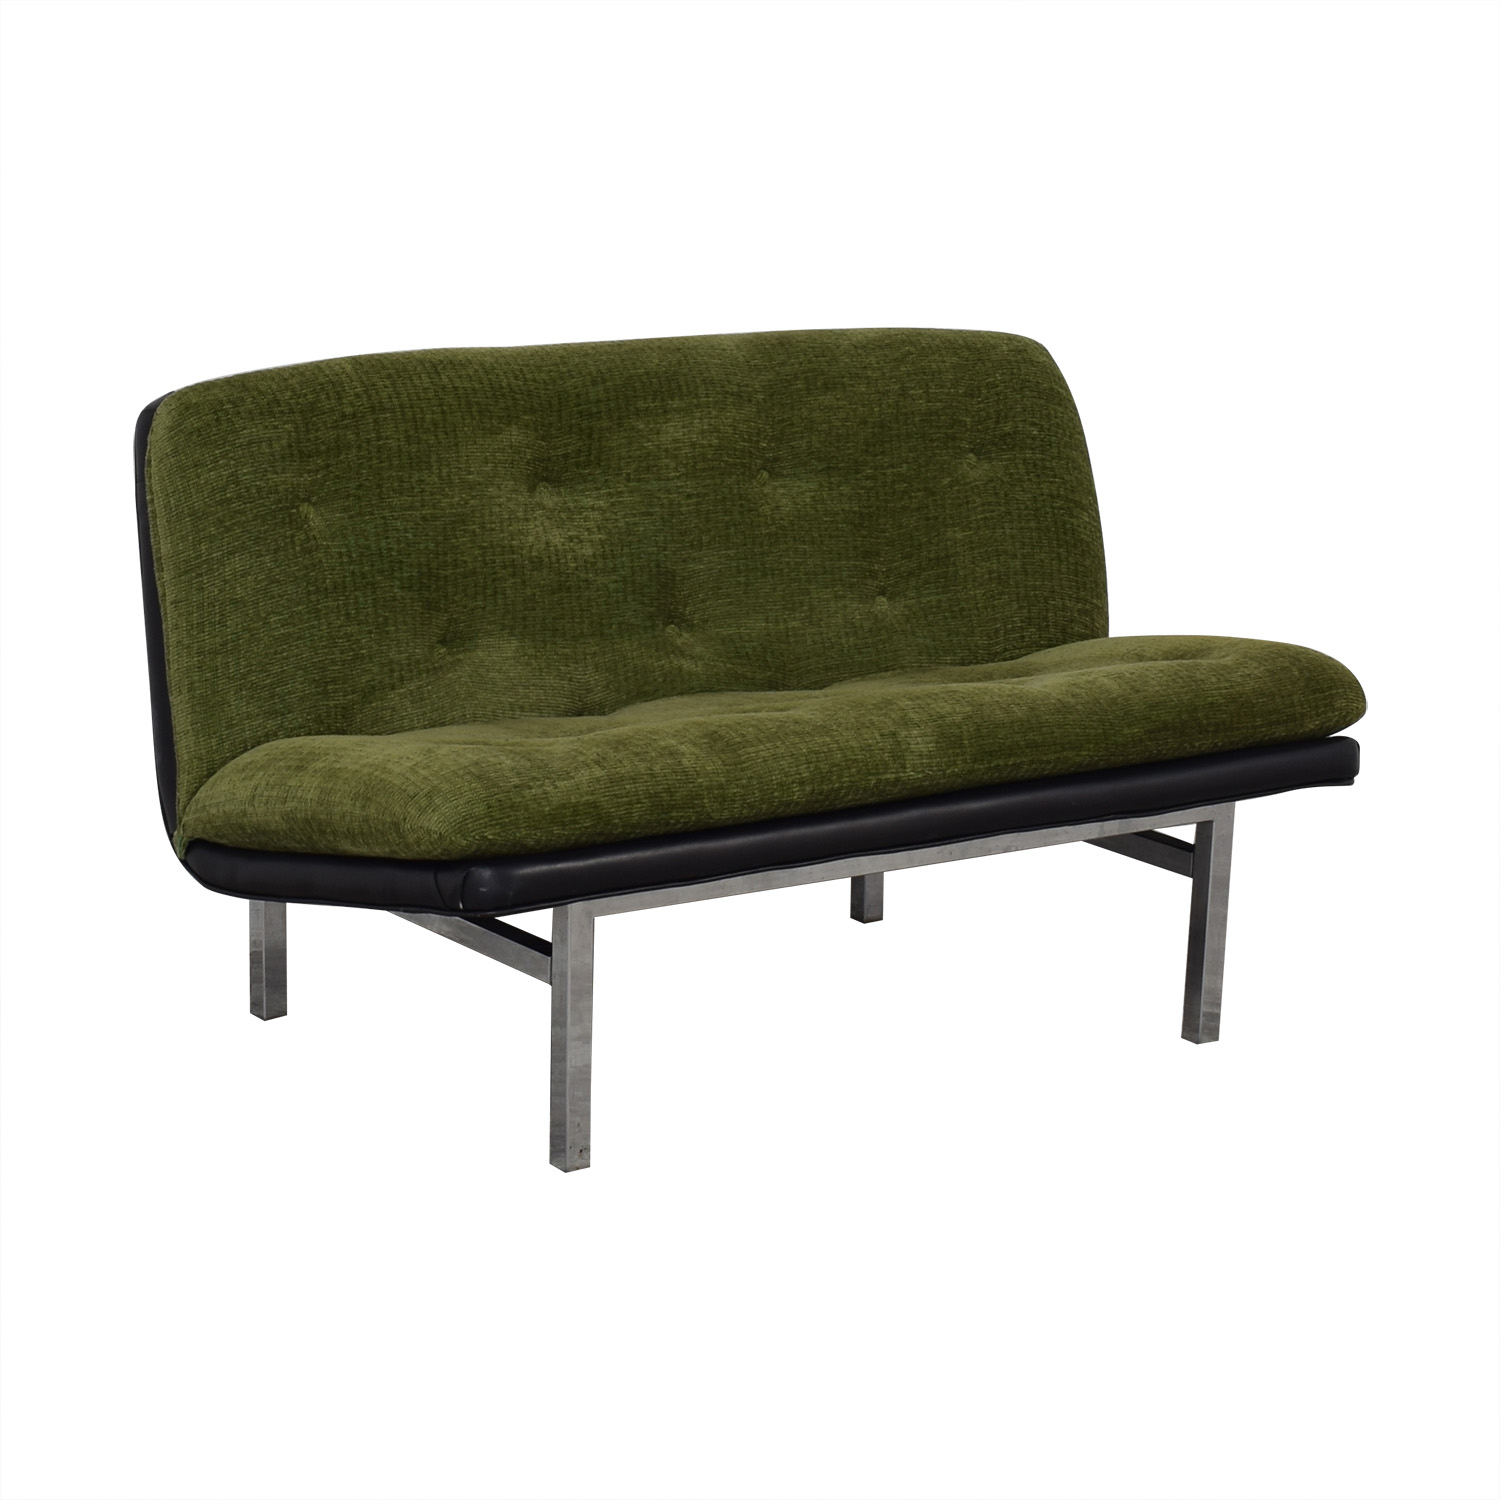 Tufted Modernist Loveseat nyc